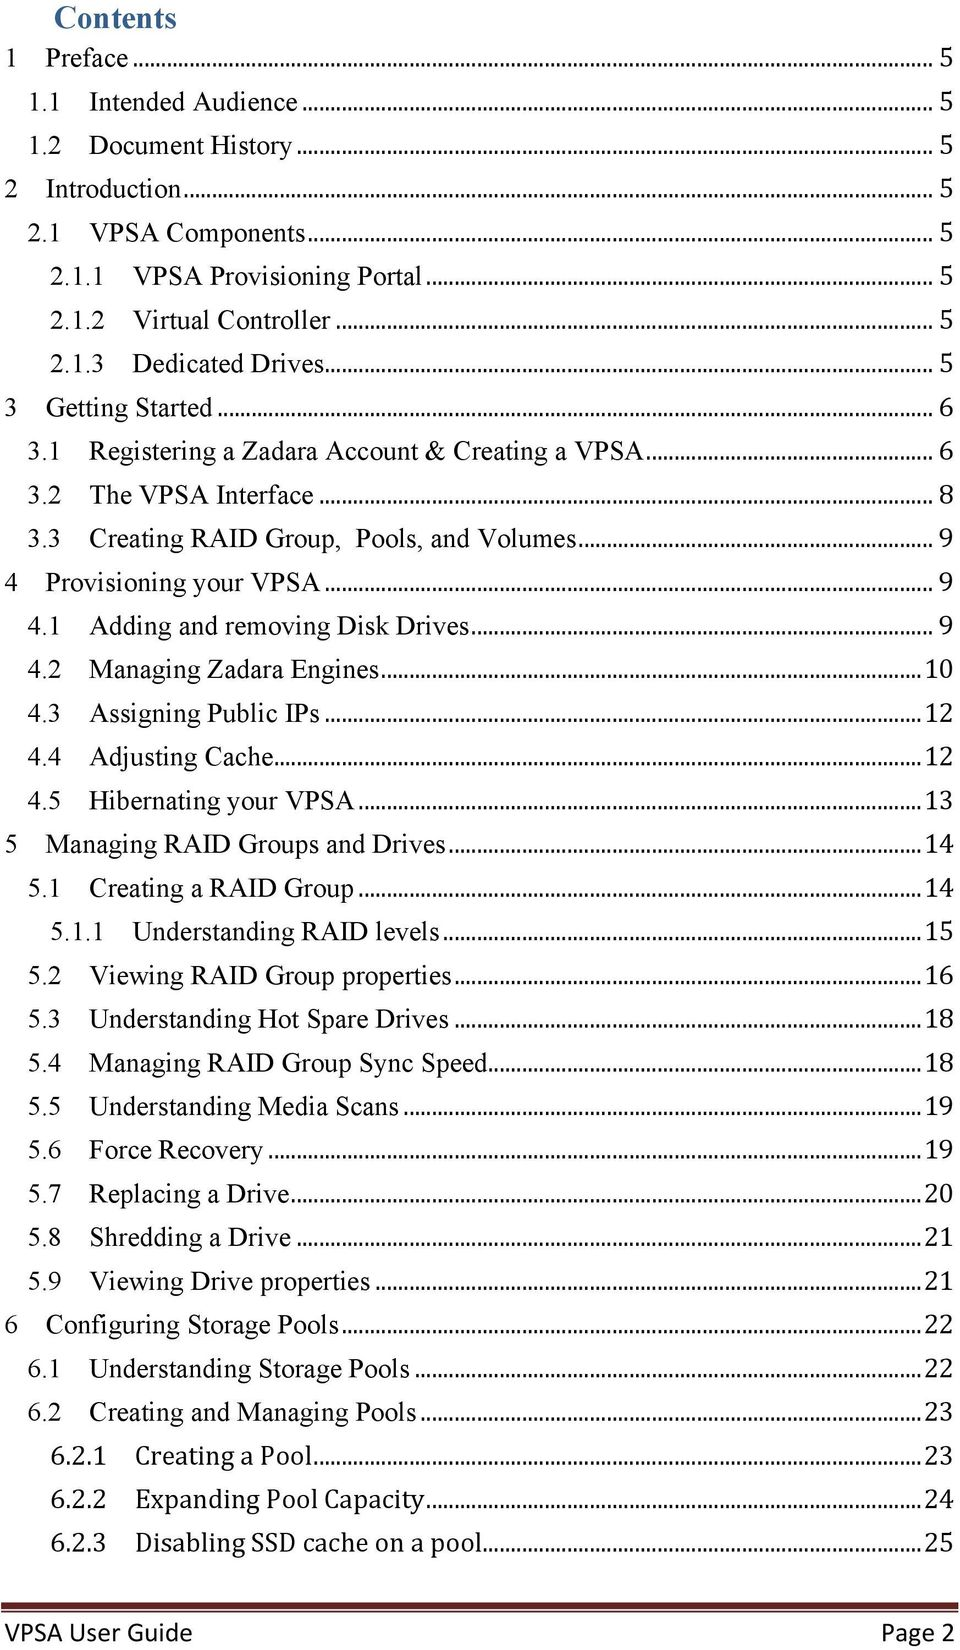 .. 9 4.2 Managing Zadara Engines... 10 4.3 Assigning Public IPs... 12 4.4 Adjusting Cache... 12 4.5 Hibernating your VPSA... 13 5 Managing RAID Groups and Drives... 14 5.1 Creating a RAID Group... 14 5.1.1 Understanding RAID levels.